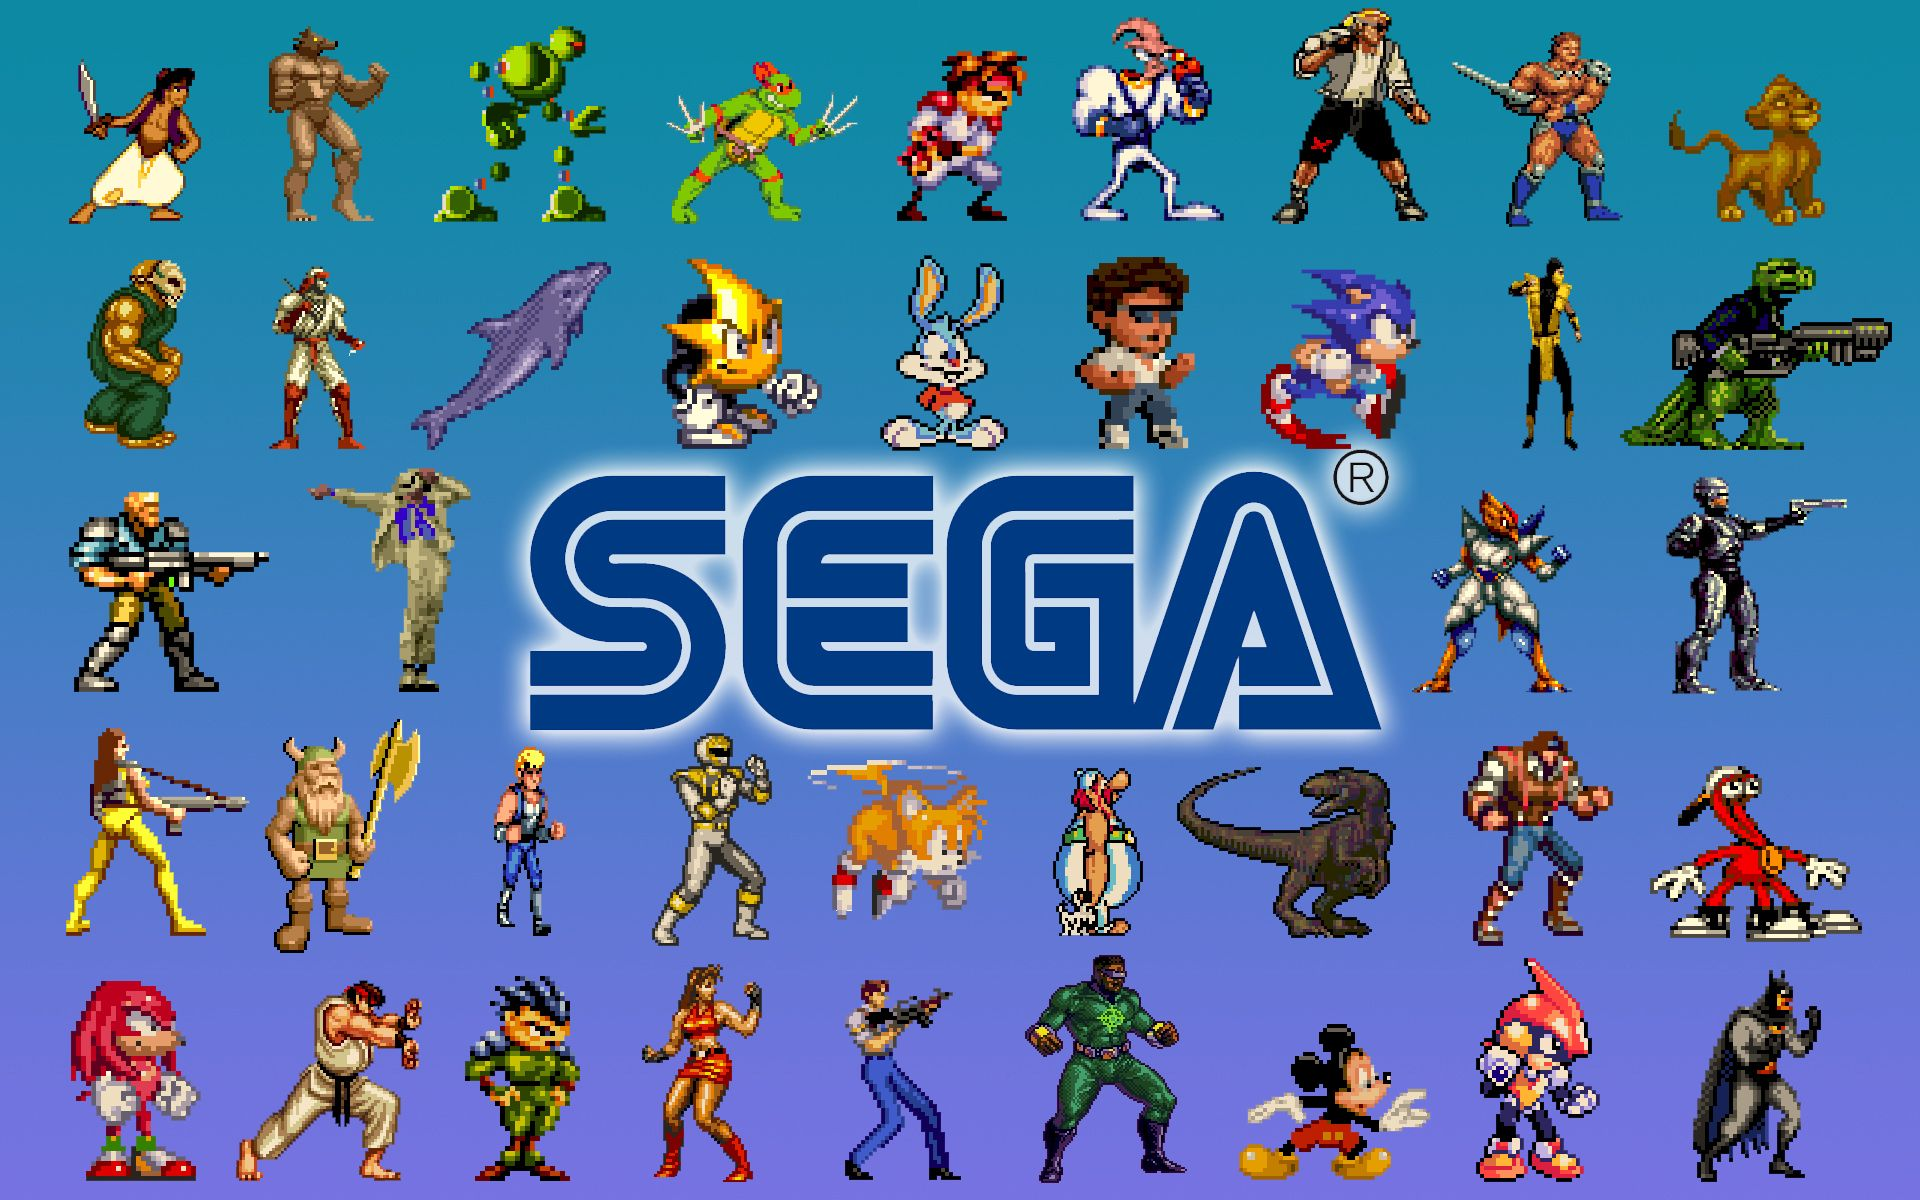 Retro Video Gaming Wallpaper Sega Genesis All Stars Retro Games Wallpaper Sega Games Sega Genesis